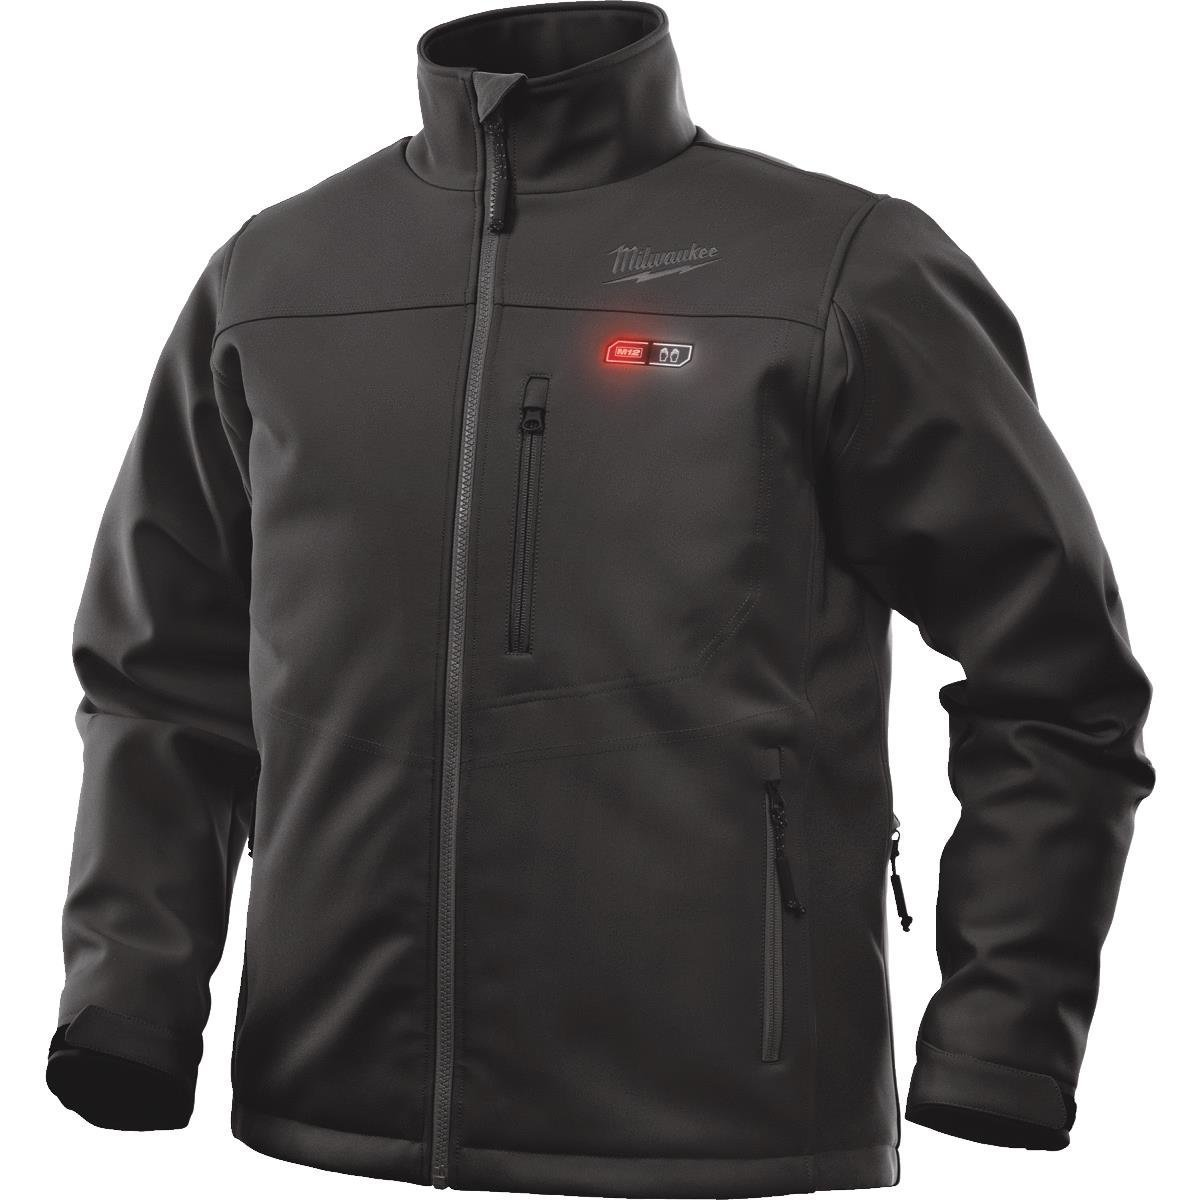 Milwaukee Jacket KIT M12 12V Lithium-Ion Heated Front and Back Heat Zones All Sizes and Colors - Battery and Charger Included (Extra Large, Black)